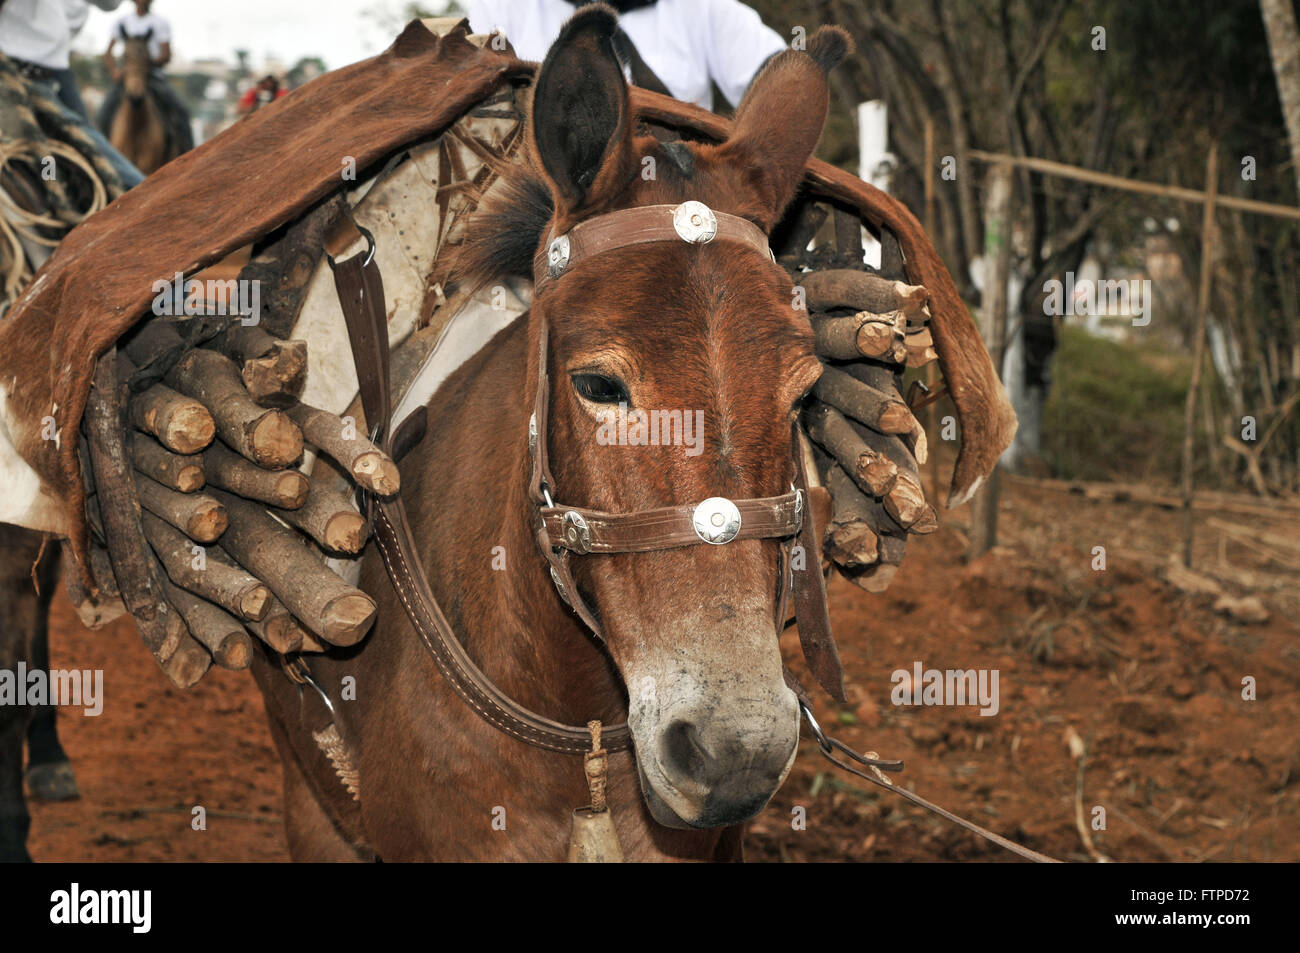 Mule with yoke full of firewood in the traditional festival of the Burning Garlic - Stock Image